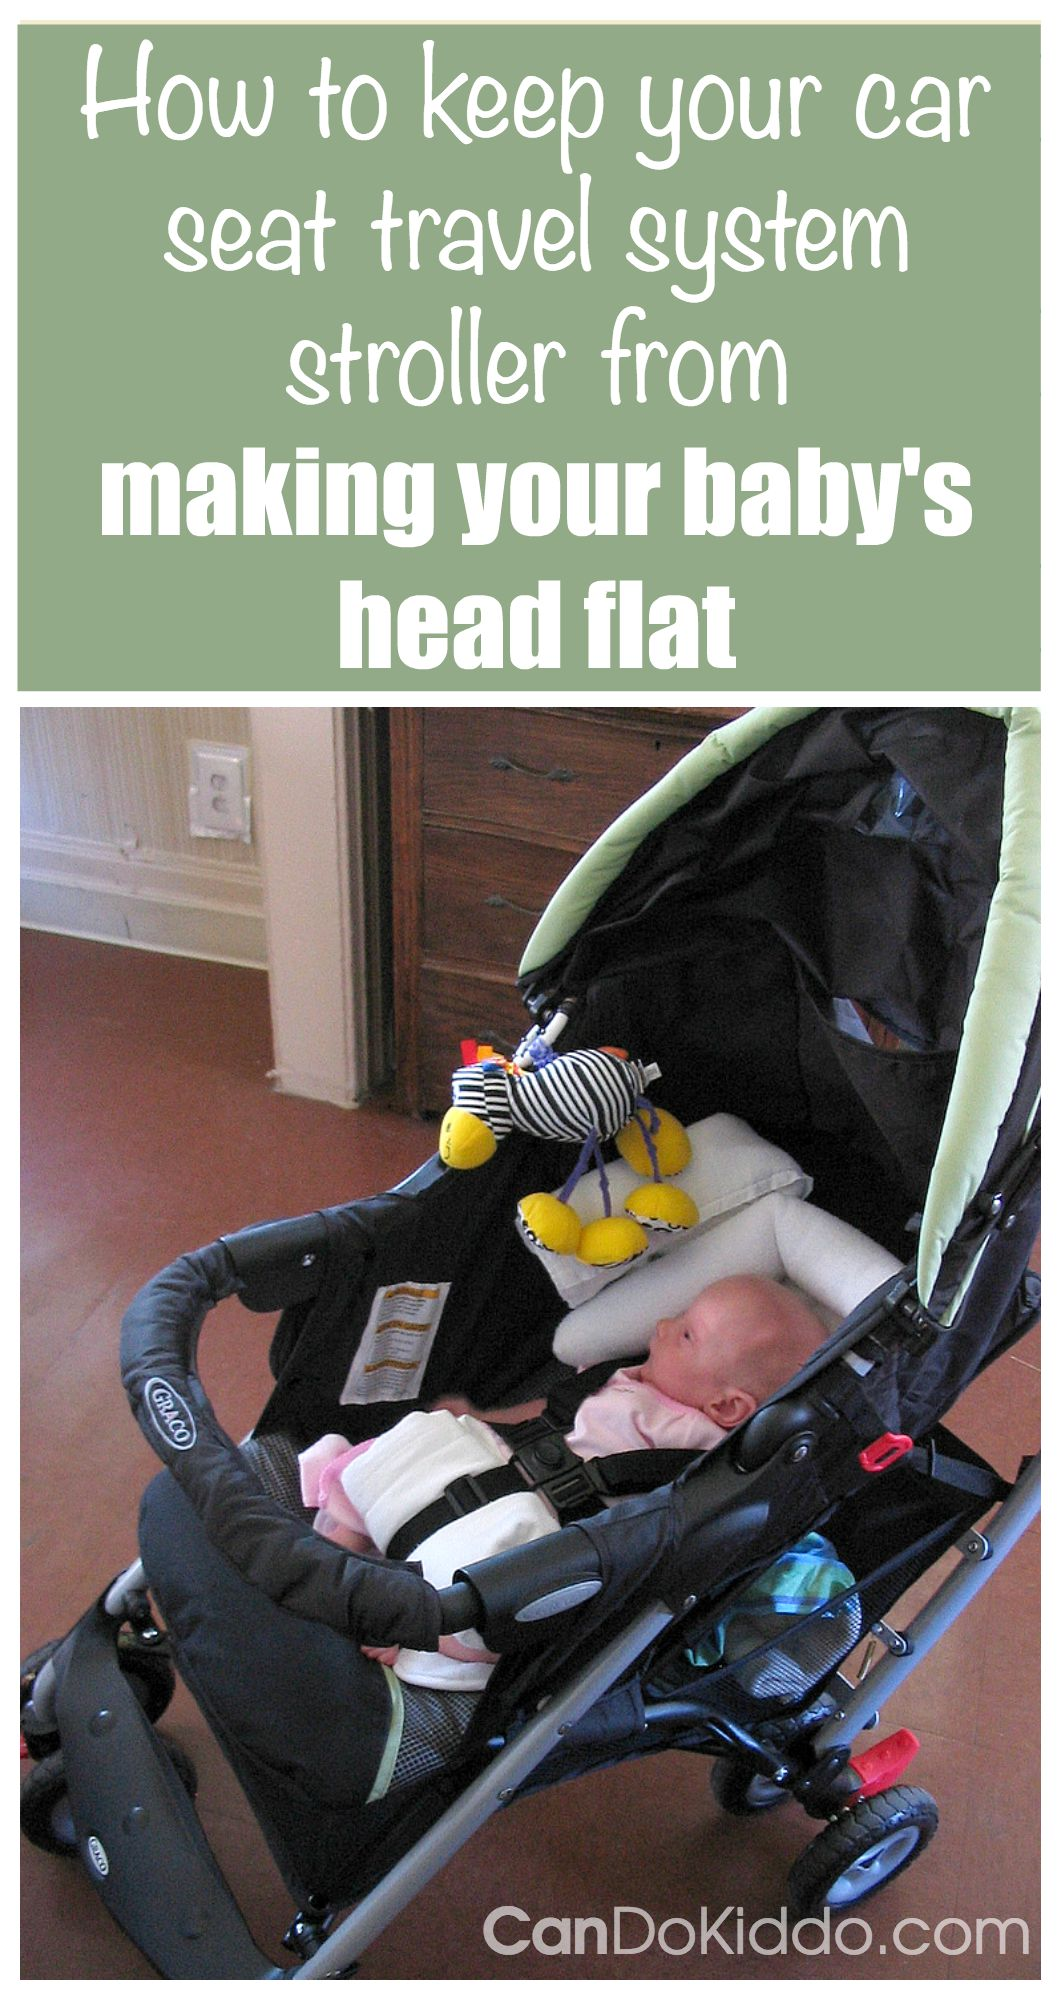 Is your stroller making your babys head flat? Try these tips from a pediatric OT. CanDoKiddo.com